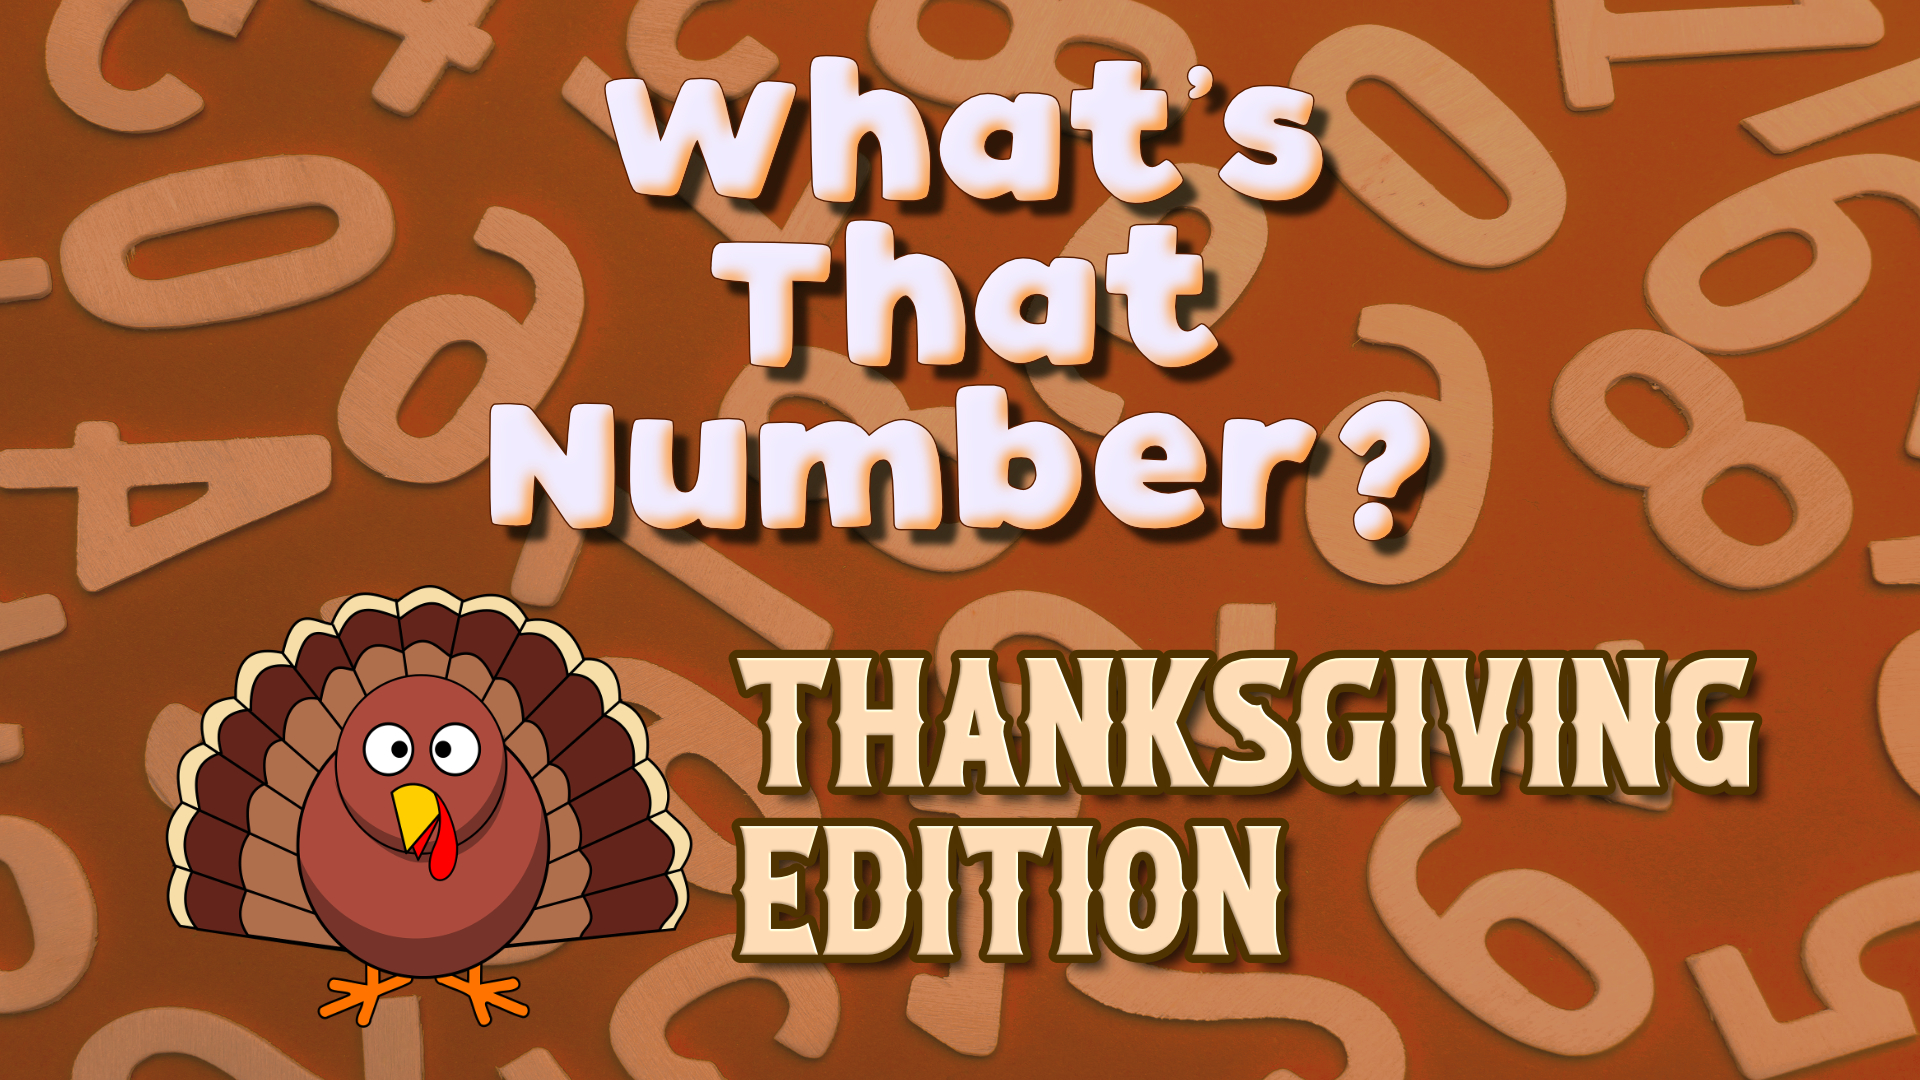 What's That Number? Thanksgiving Edition